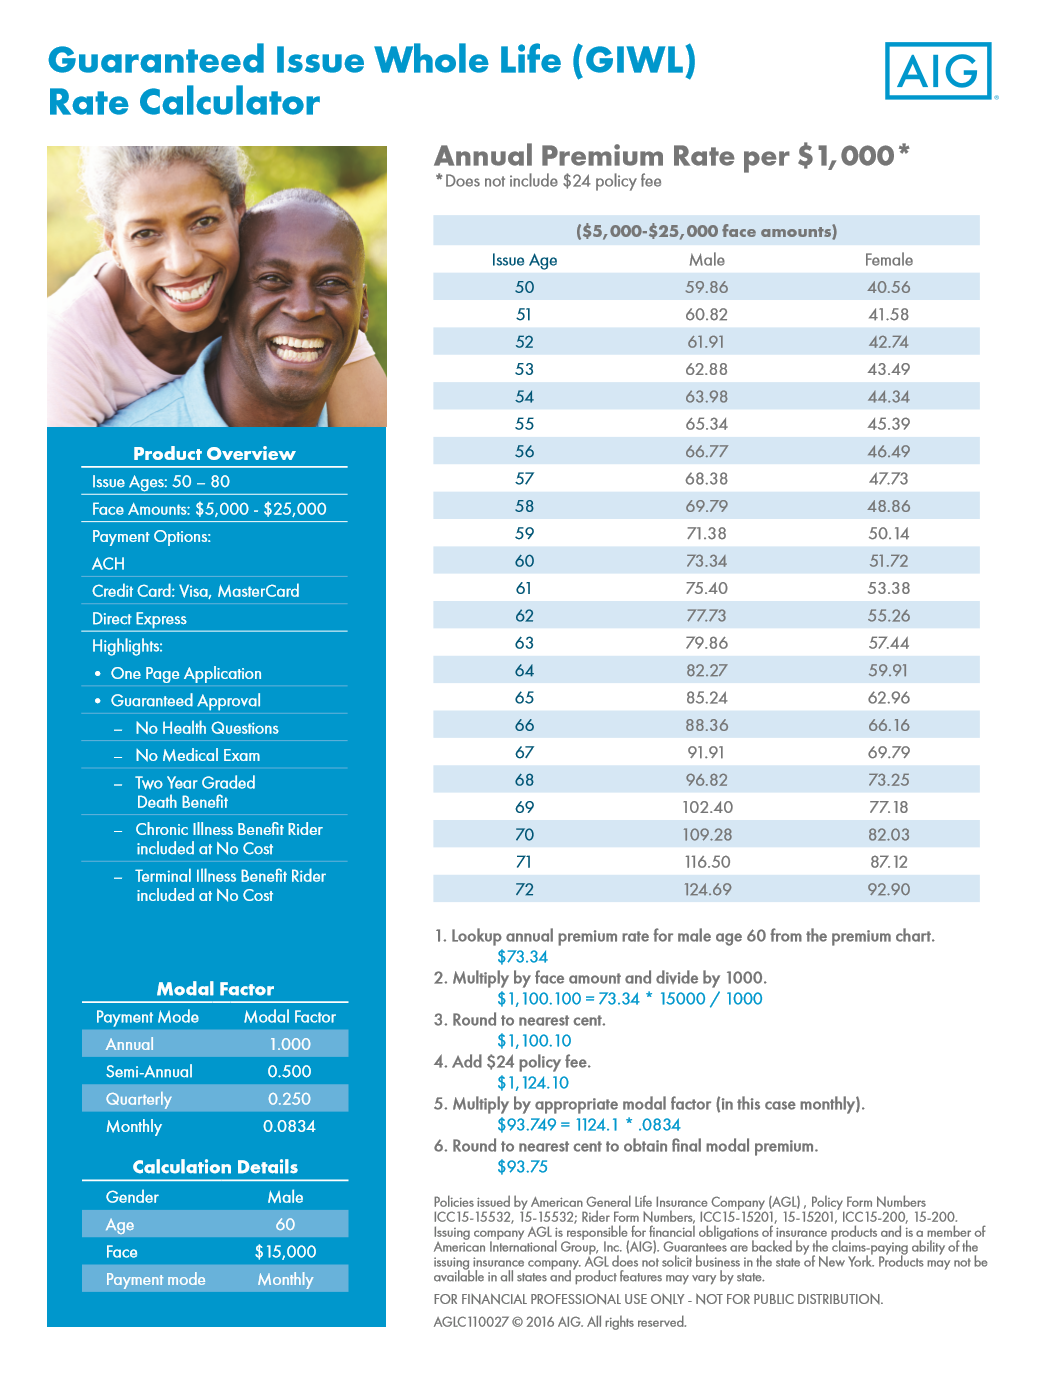 Guaranteed Issue Life Insurance Quotes Aig Guaranteed Issue Whole Life Giwl Information